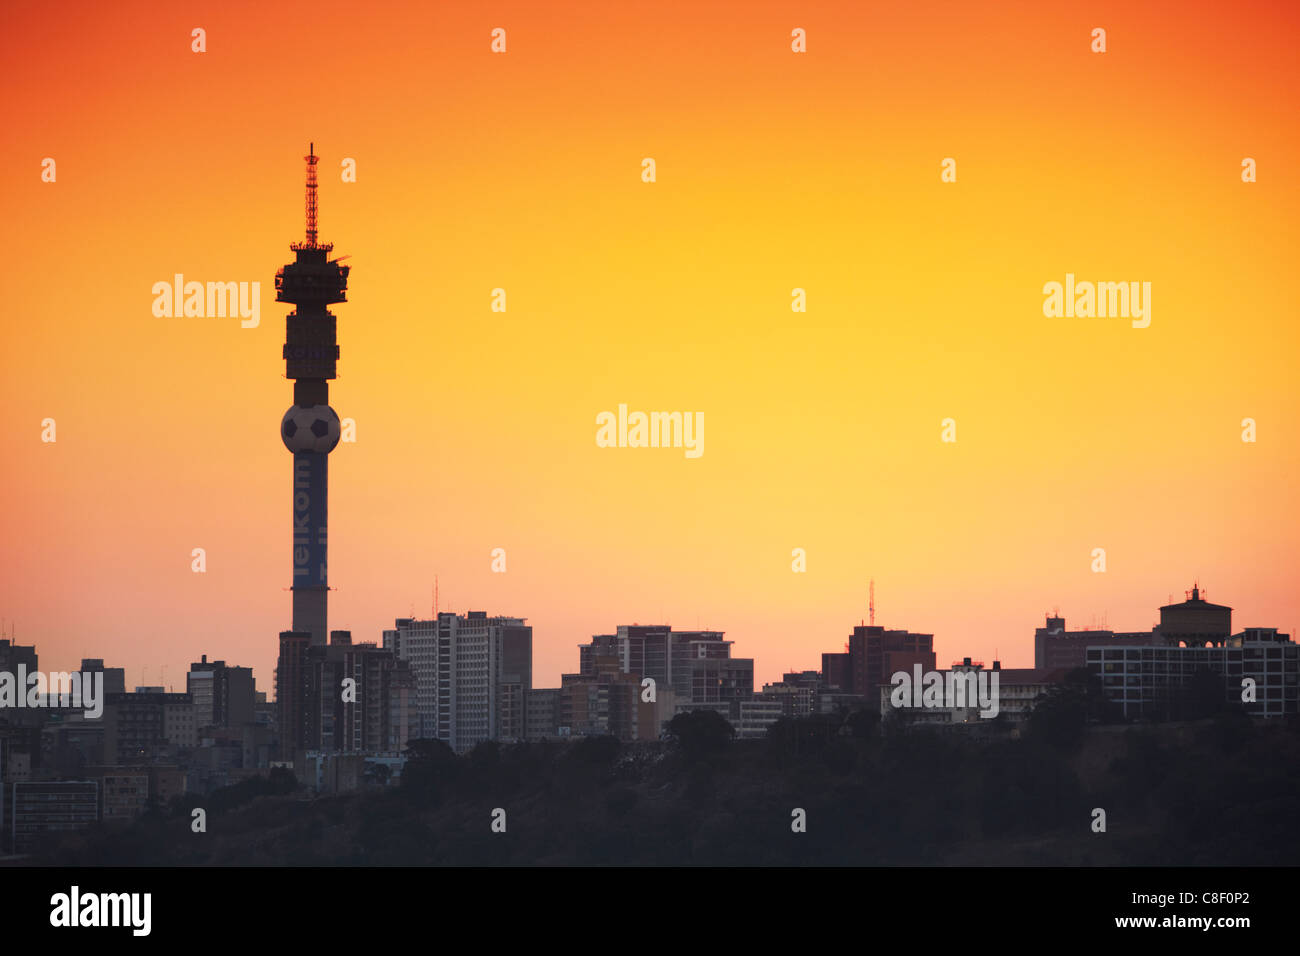 View of Johannesburg skyline at sunset, Gauteng, South Africa - Stock Image